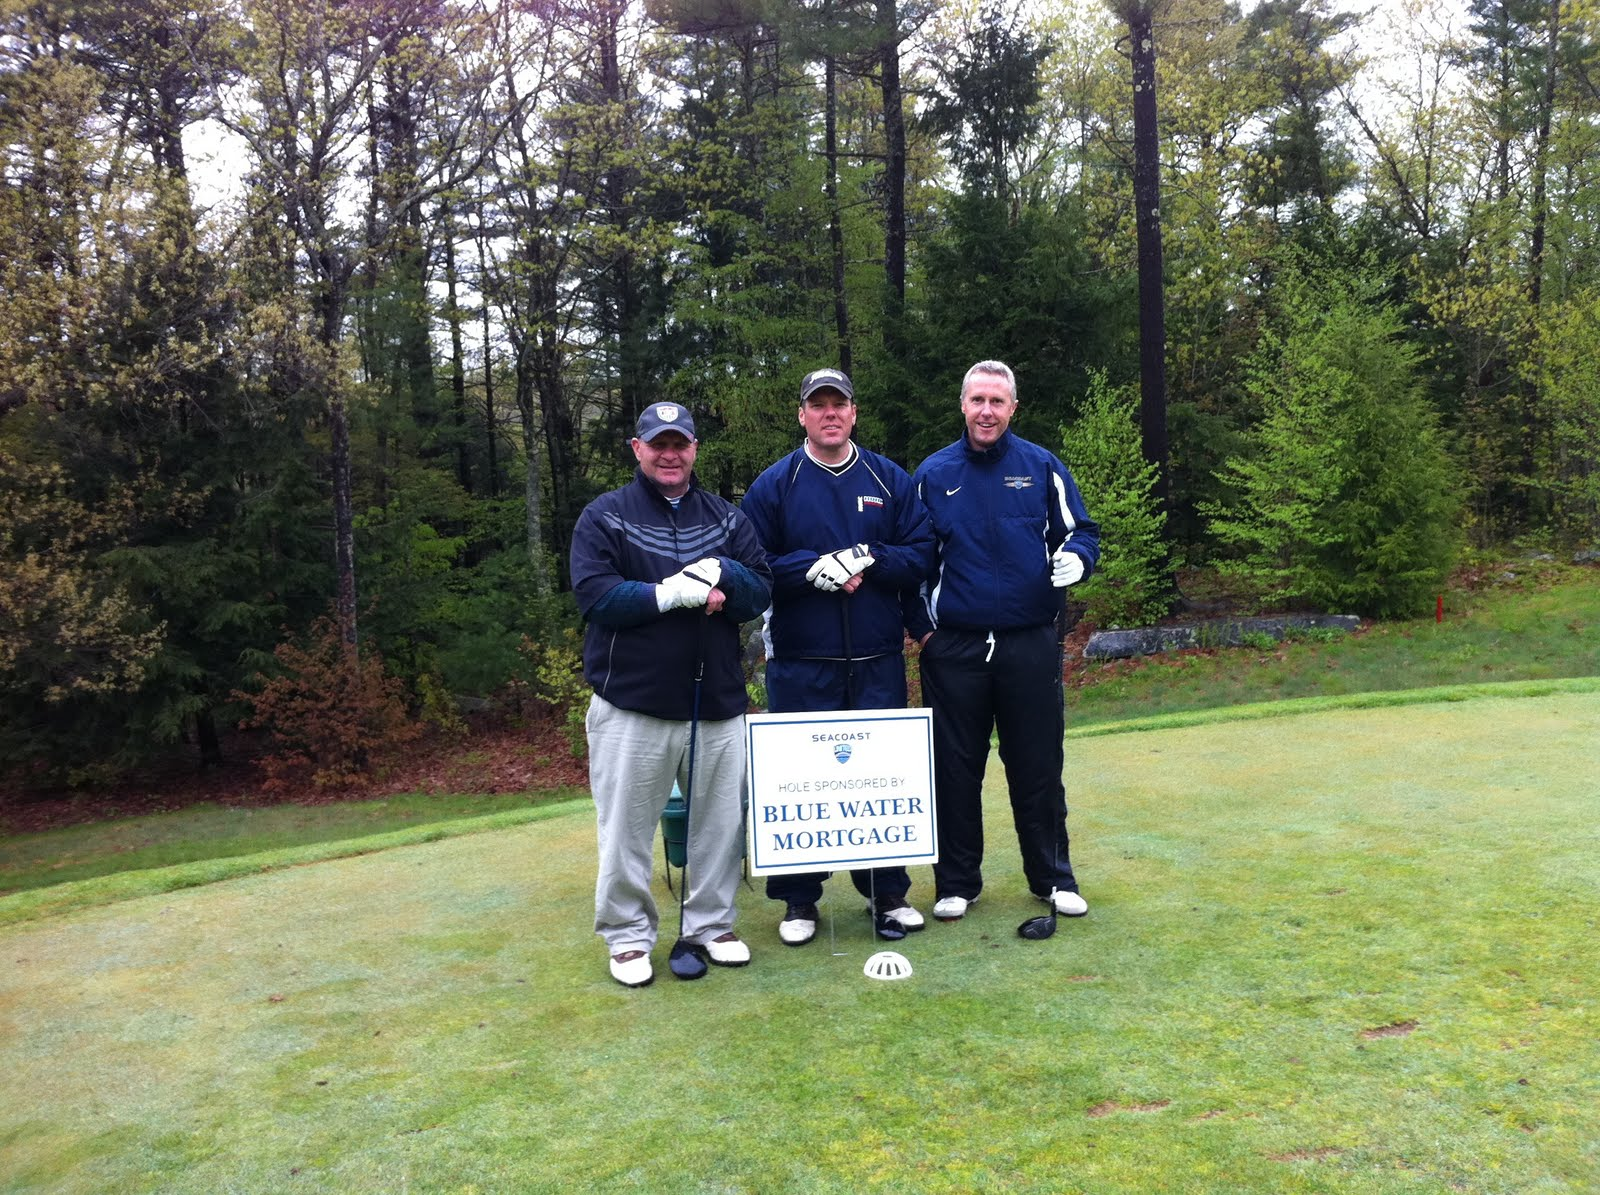 Seacoast United Bob Masi Golf Tournament